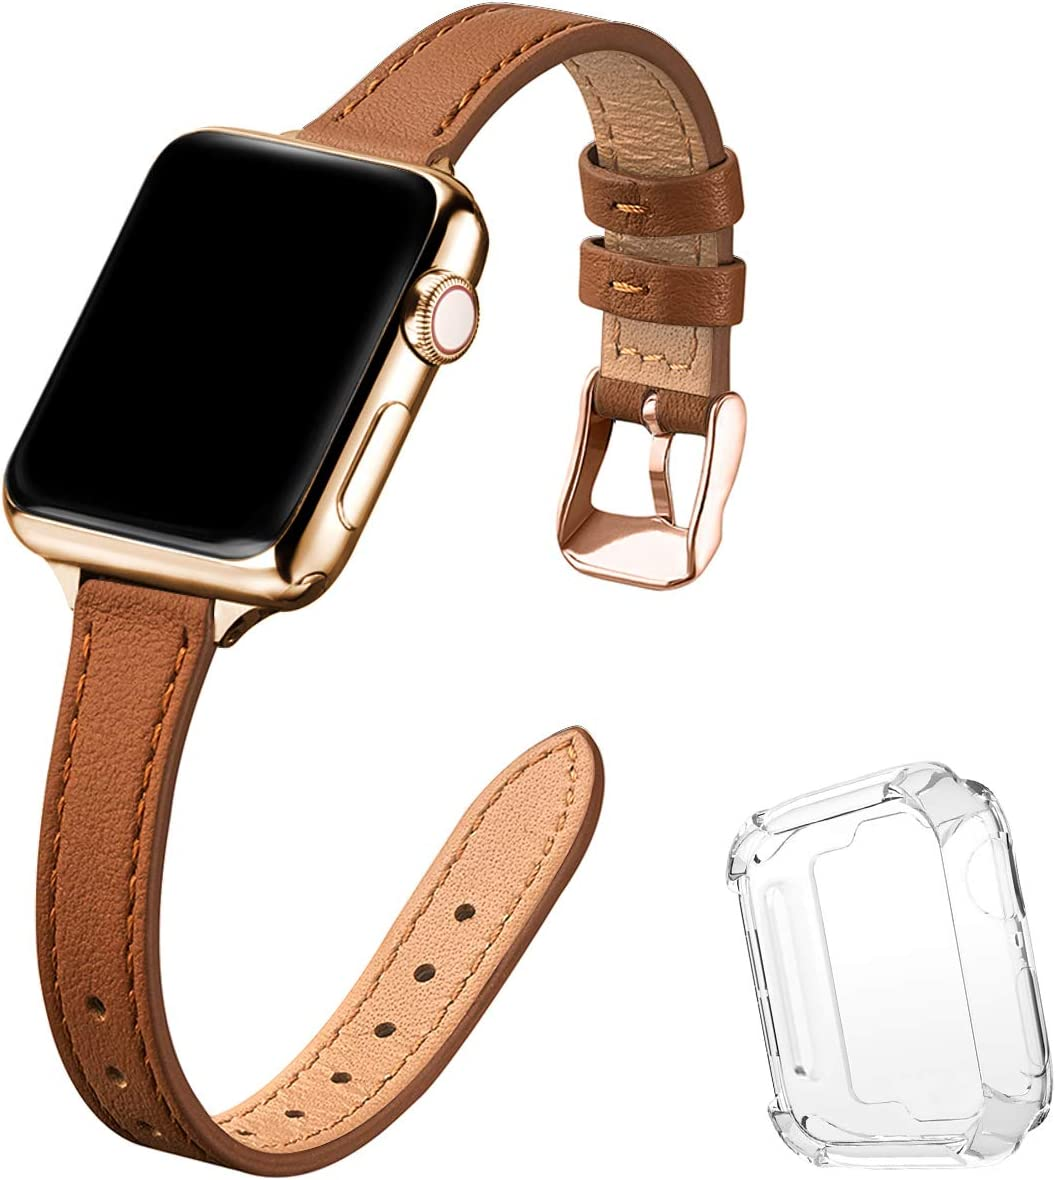 STIROLL Slim Leather Bands Compatible with Apple Watch Band 38mm 40mm 42mm 44mm, Top Grain Leather Watch Thin Wristband for iWatch SE Series 6/5/4/3/2/1 (Brown with Gold, 42mm/44mm)